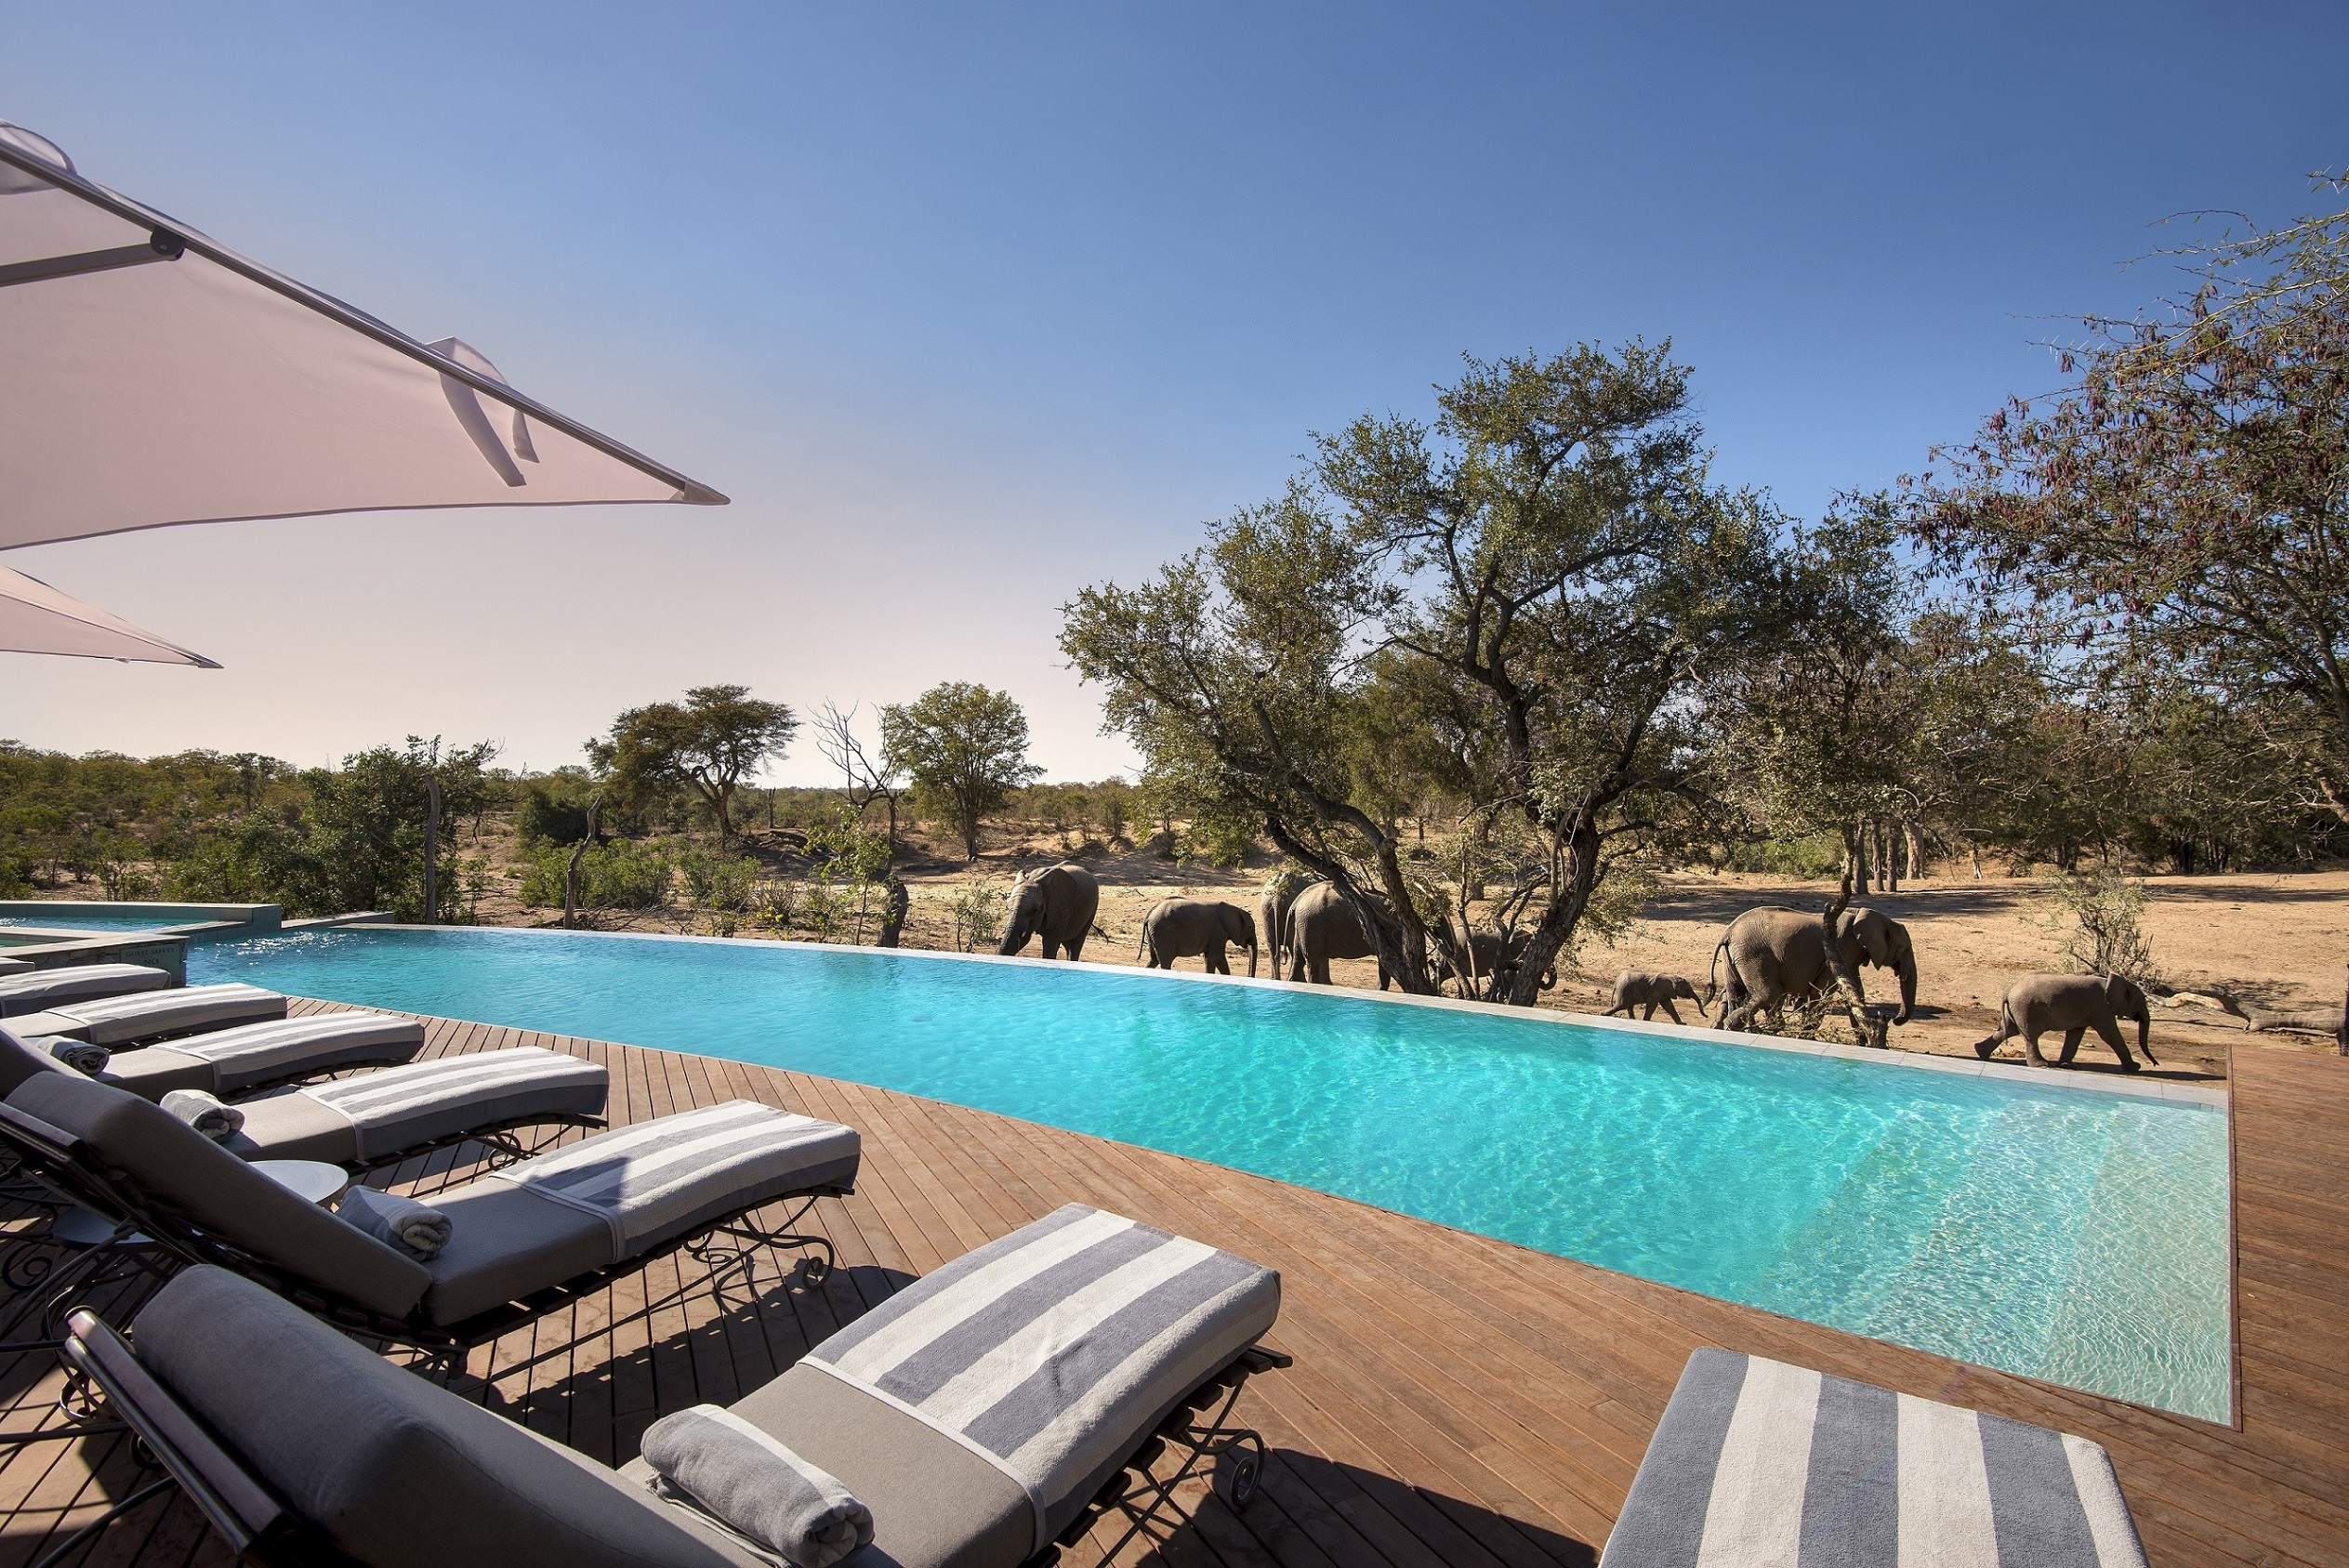 andbeyond-ngala-safari-lodge-pool1